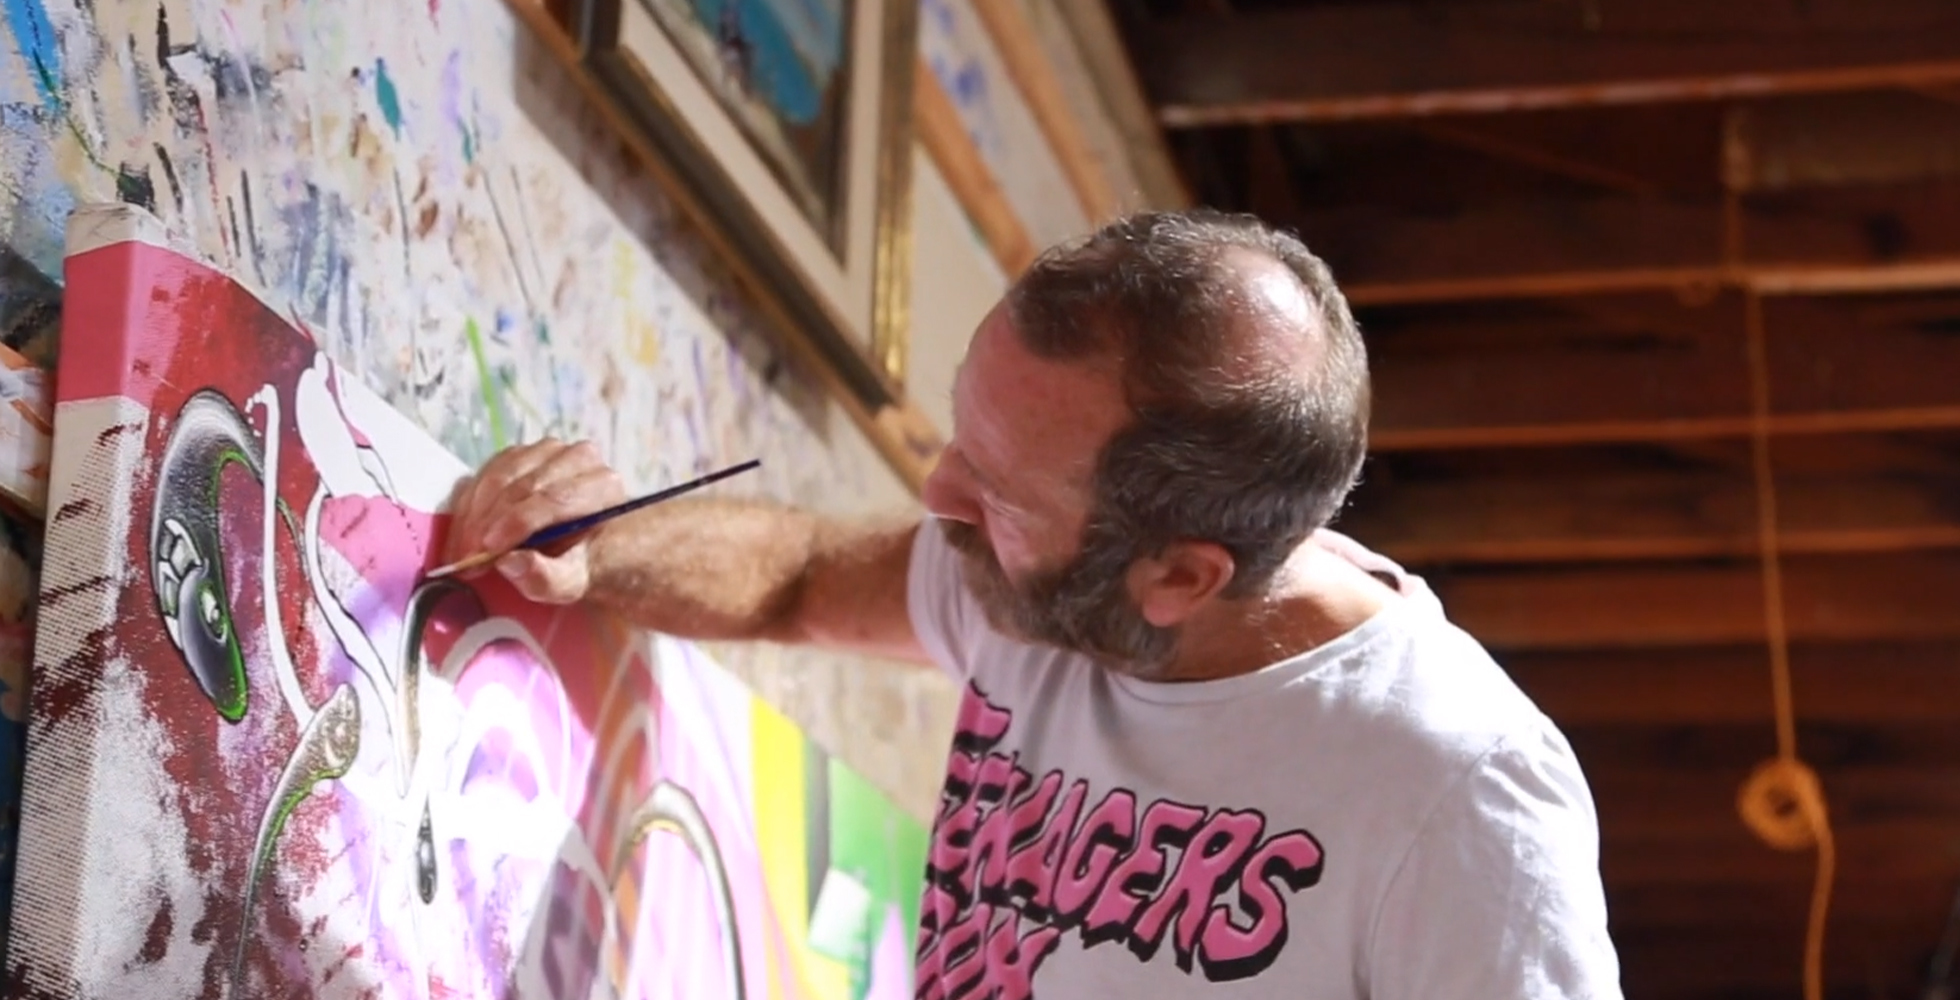 A man painting on a canvas.